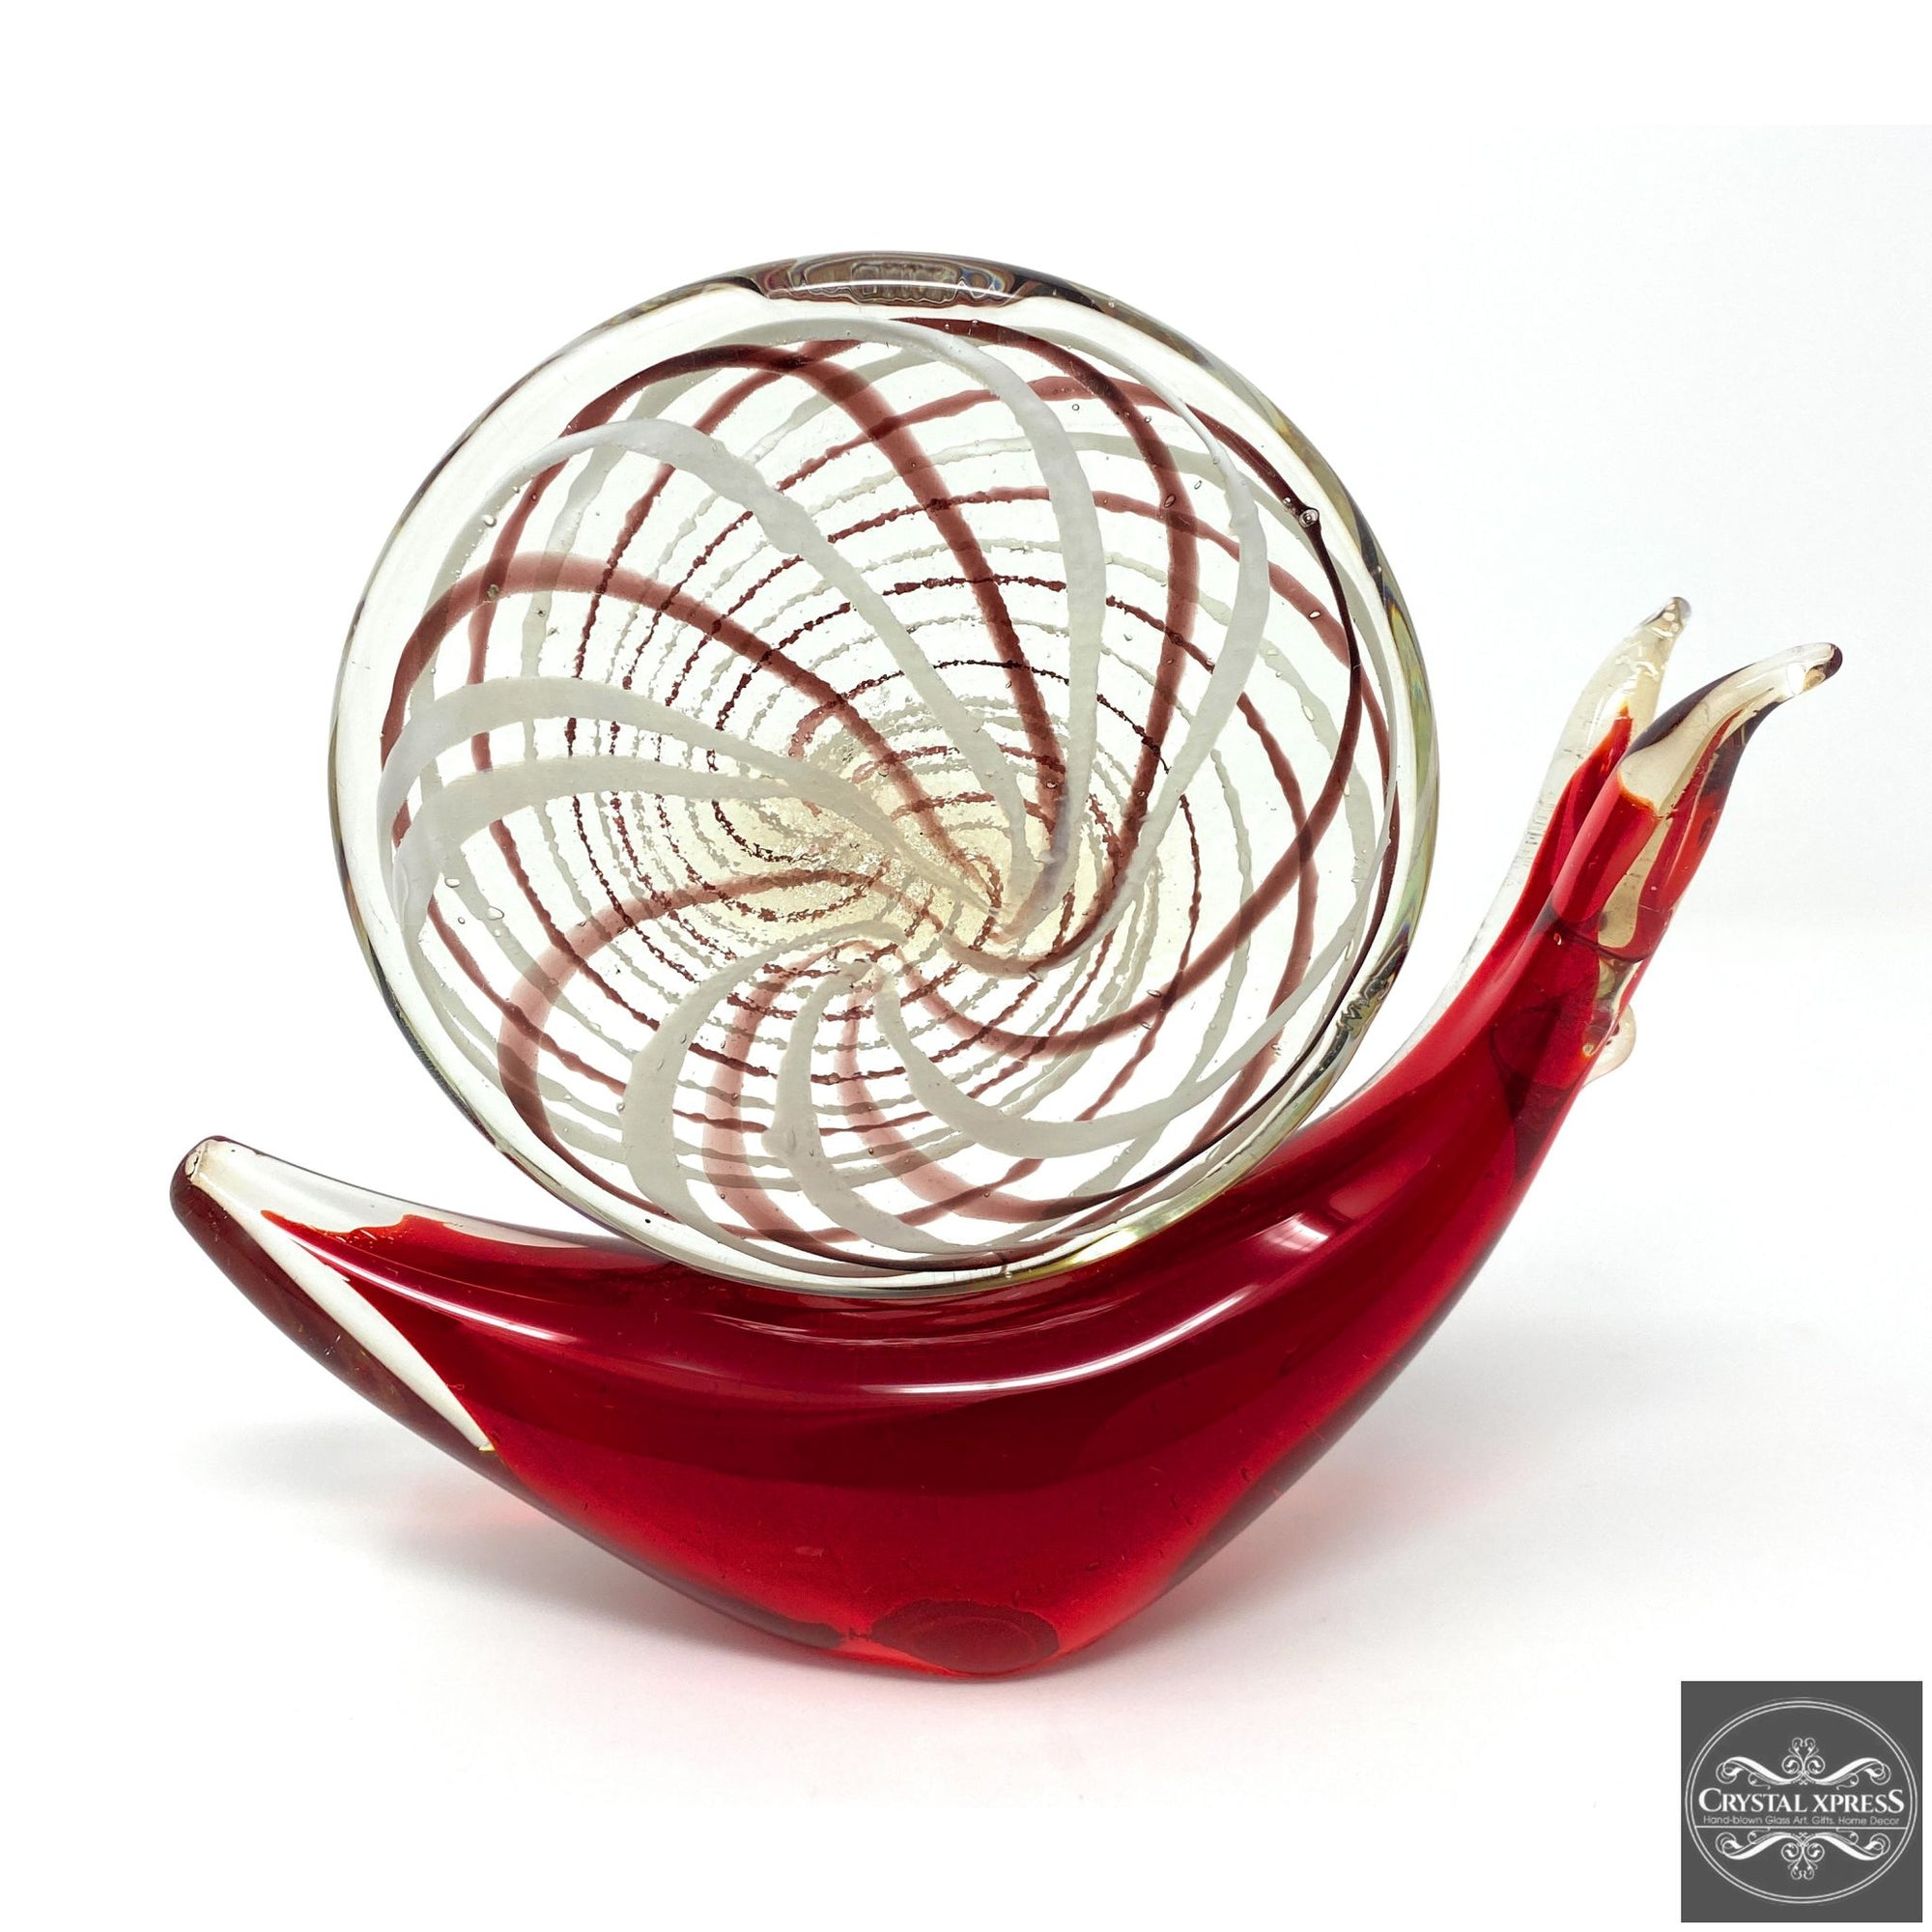 "New 9"" Beautiful Hand Blown Glass Snail Figurine SculptureCrystal Xpress"